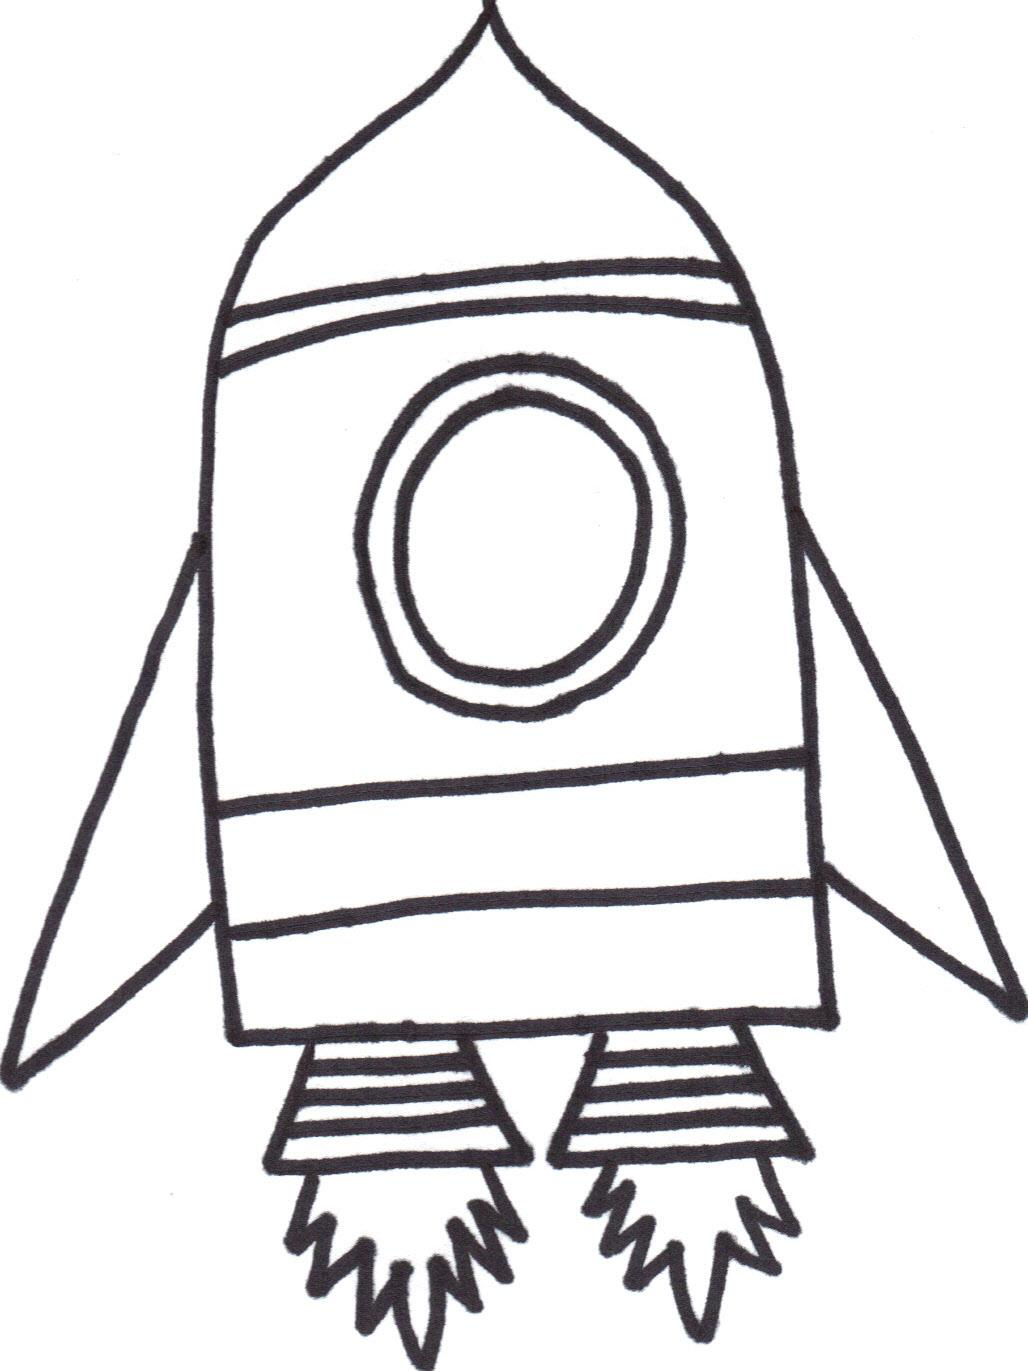 Similiar Cartoon Rocket Outline Keywords.